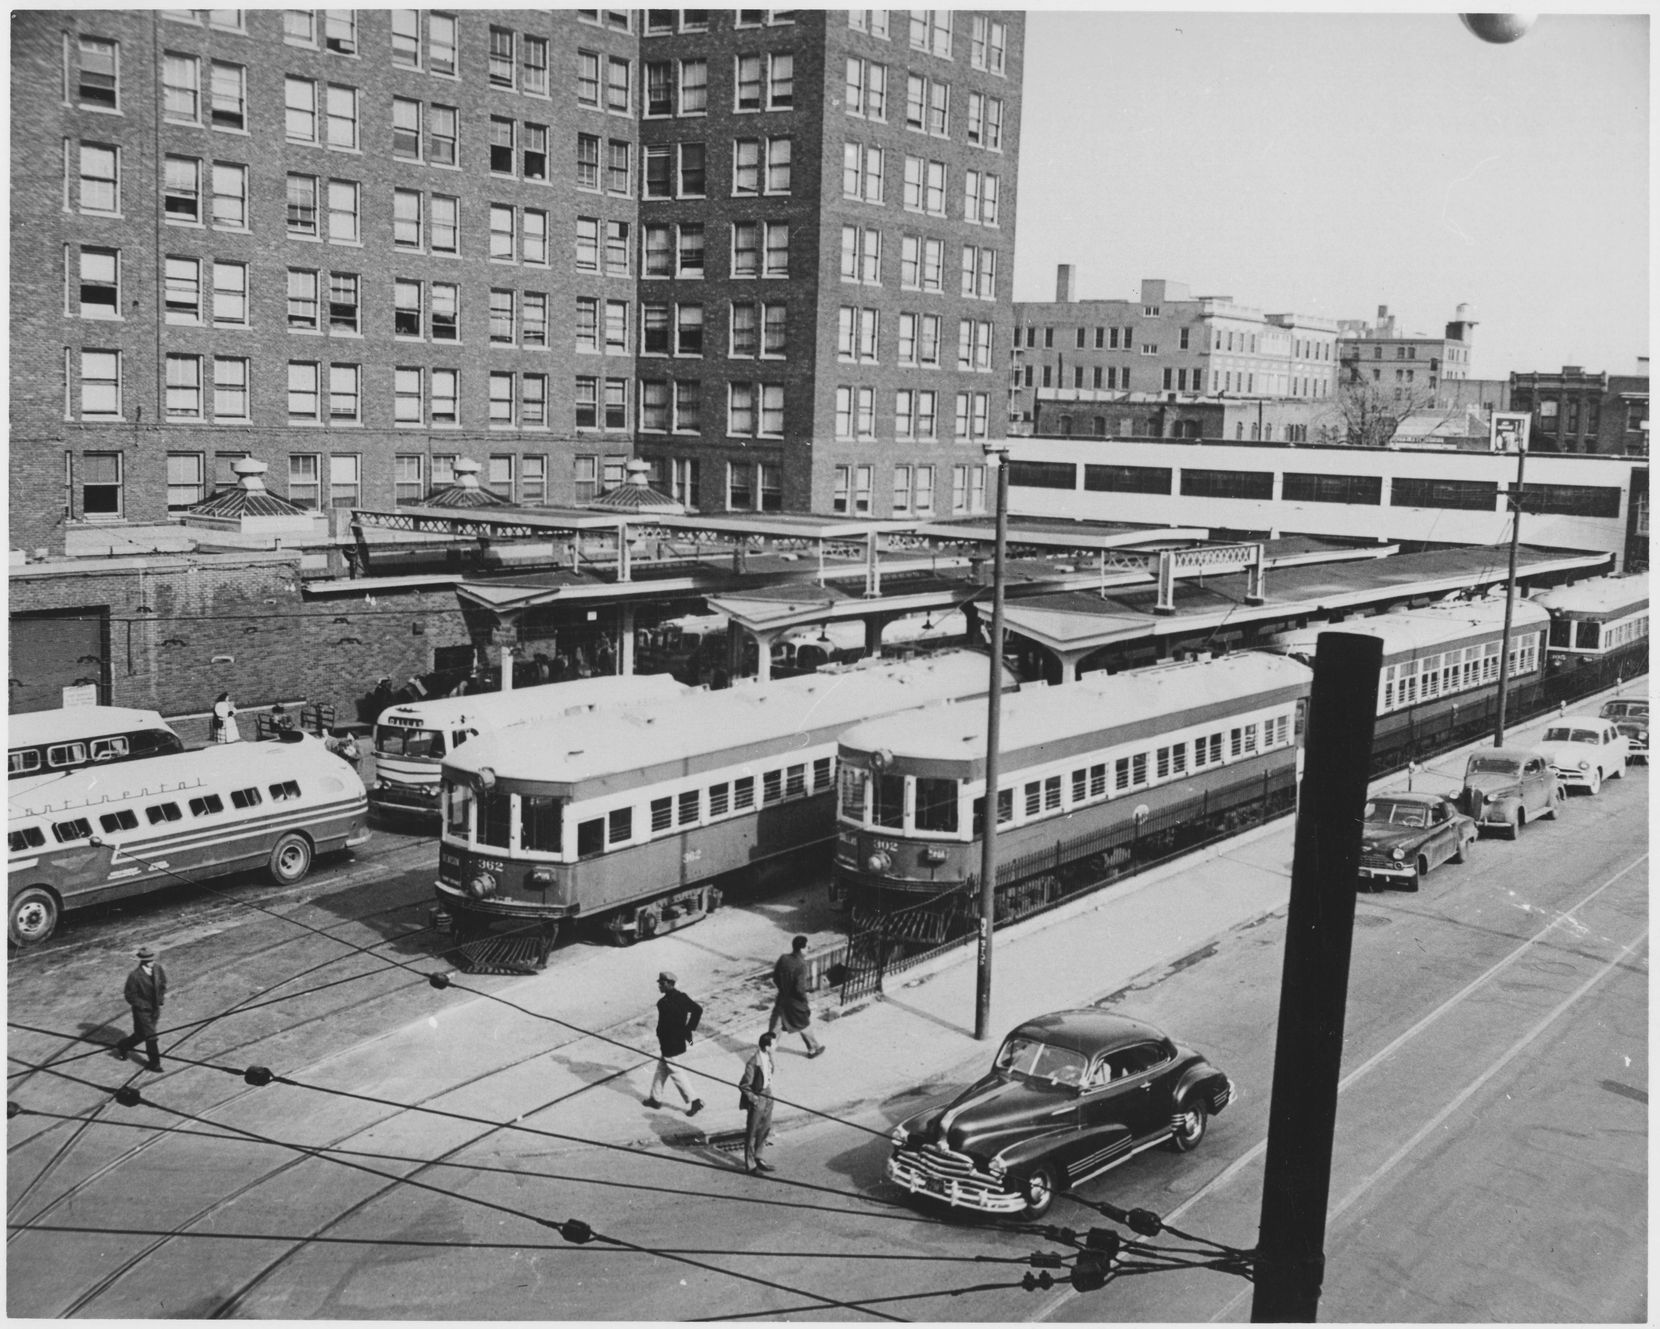 Electric trains line up outside downtown Dallas' Interurban Building in the 1940s.